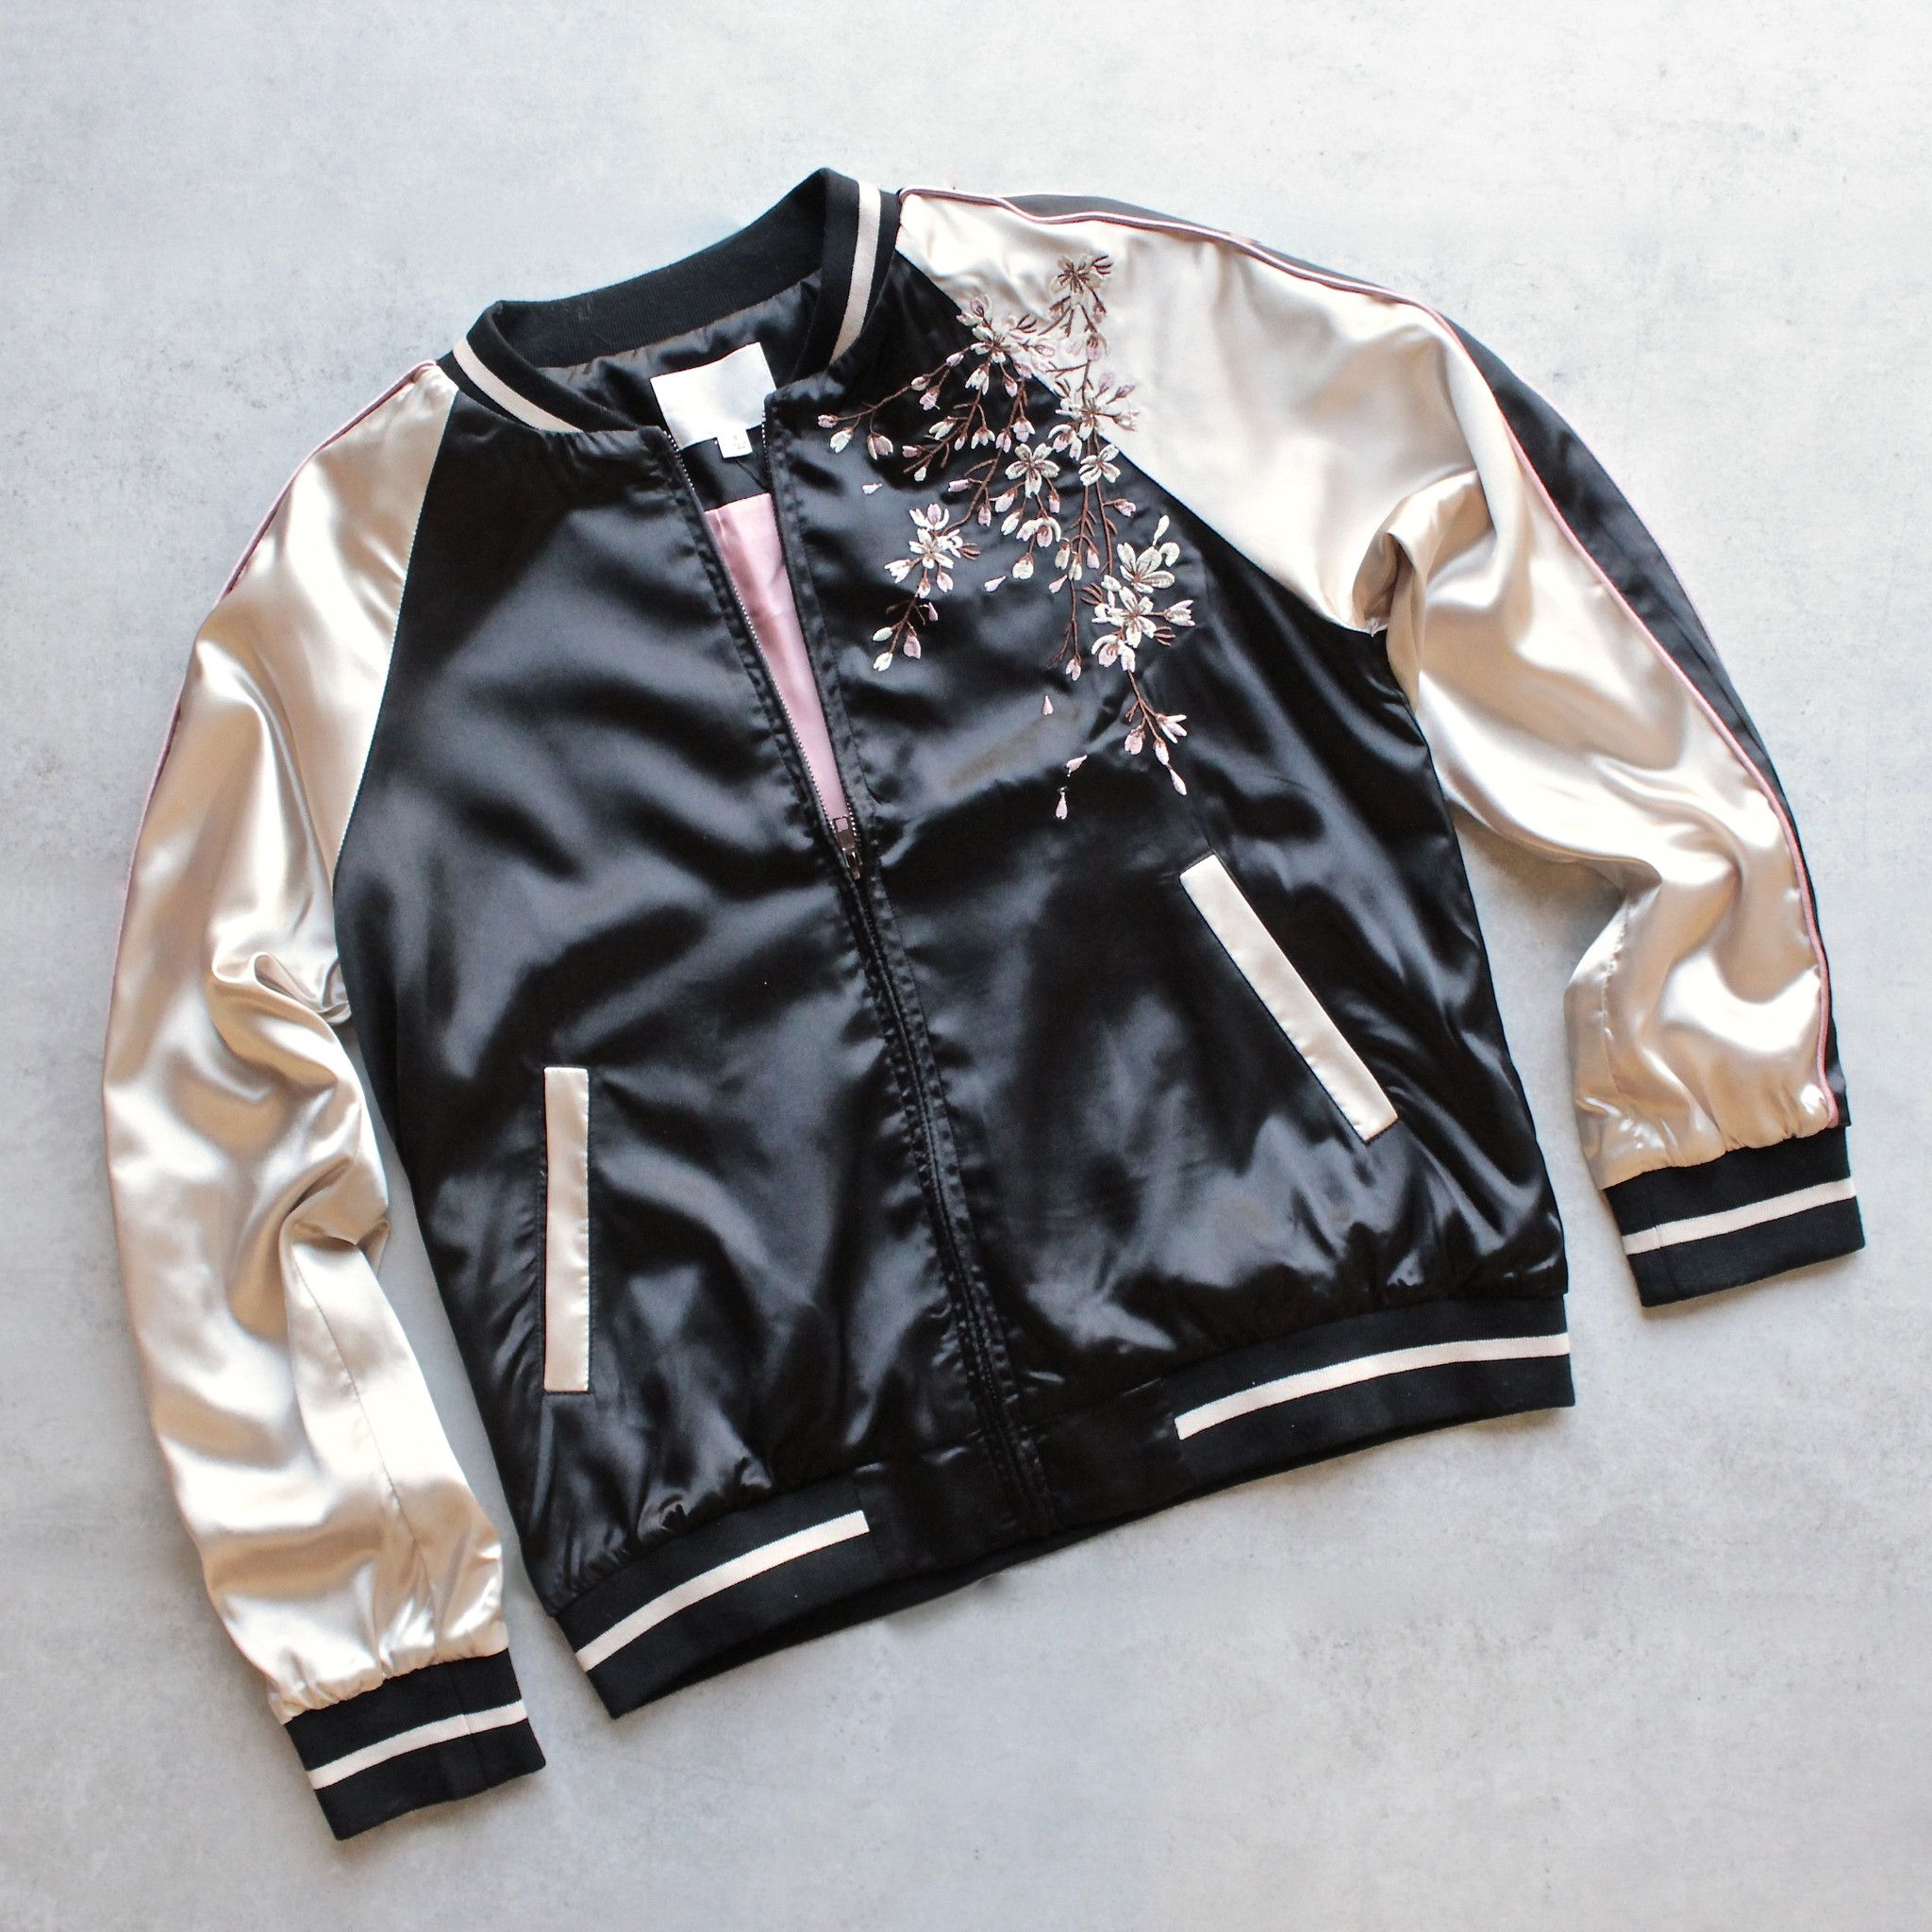 - Satin bomber jacket with contrast paneling and embroidery at front and back. - Hand wash cold. Line dry flat. Iron low heat if needed. - 97% POLYESTER, 3%SPANDEX US S 2-4 M 6-8 L 10-12